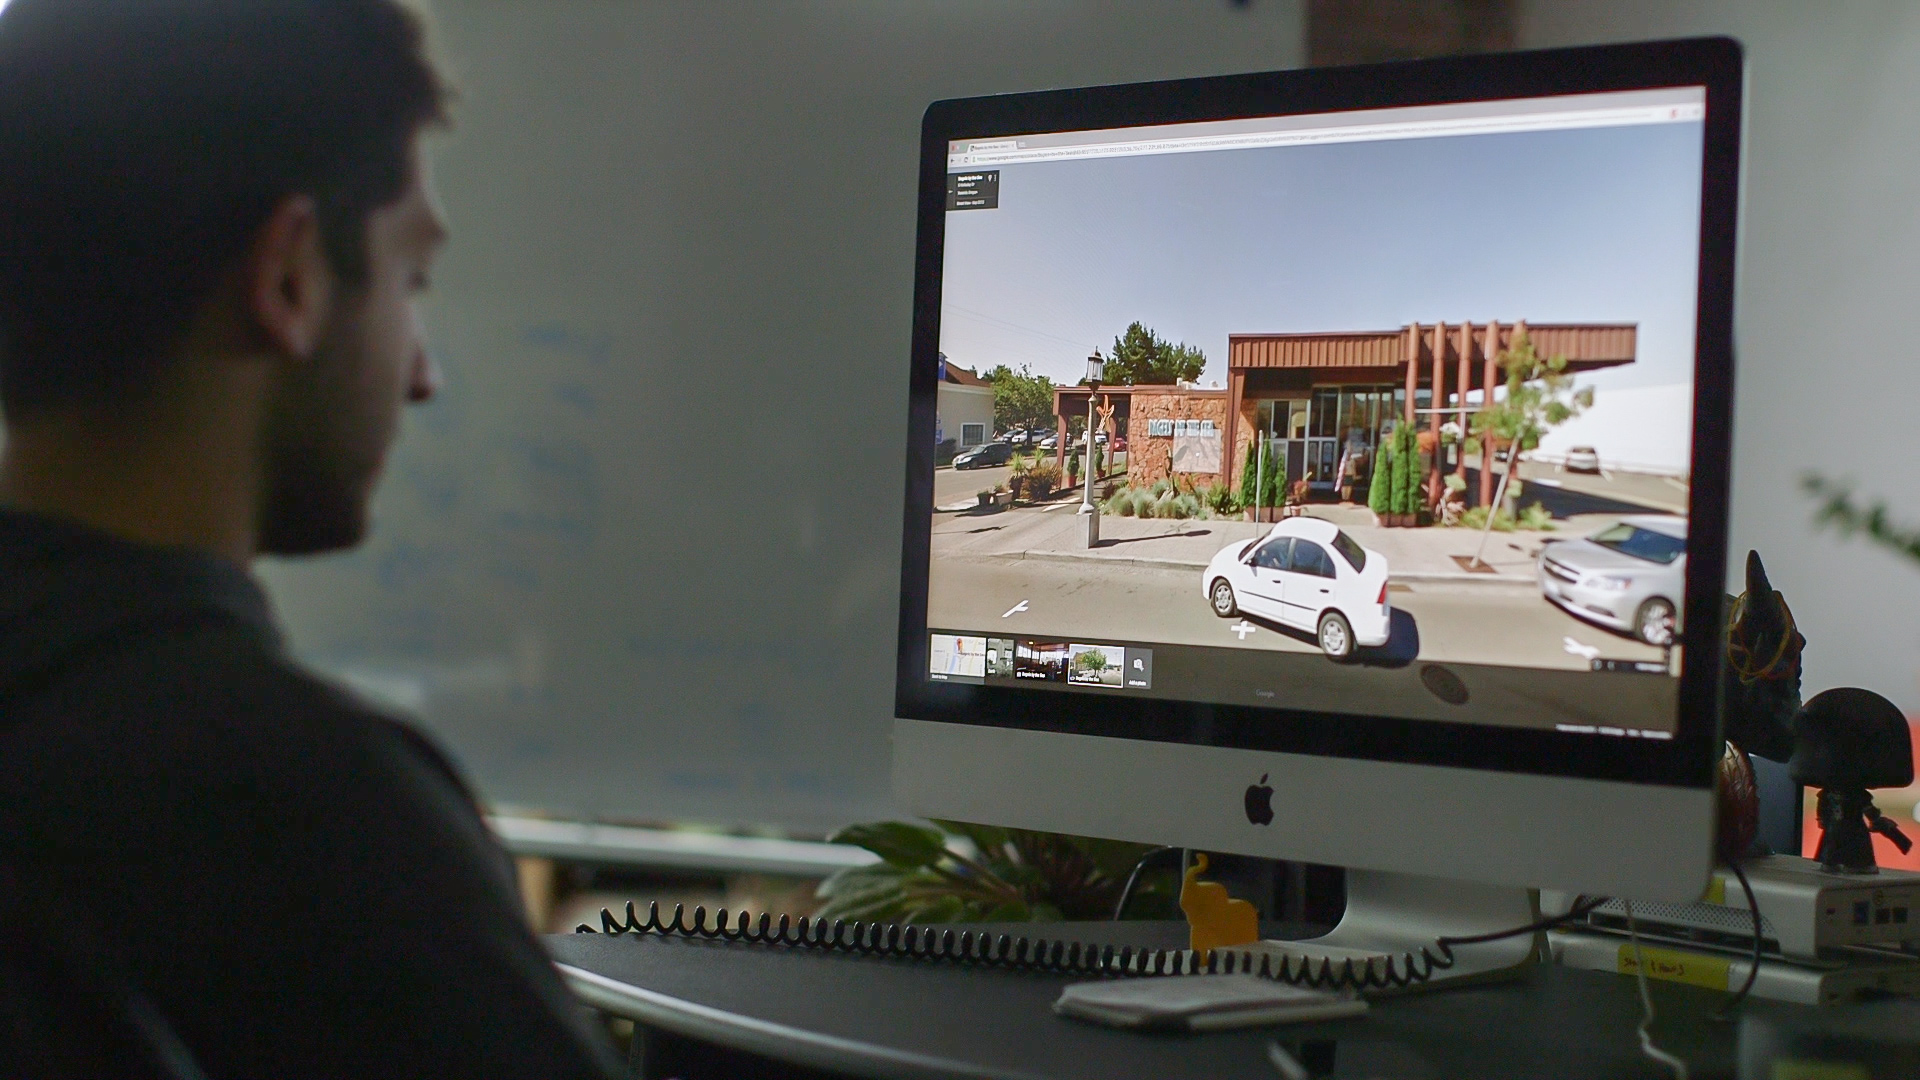 Google street view is great for location scouting.